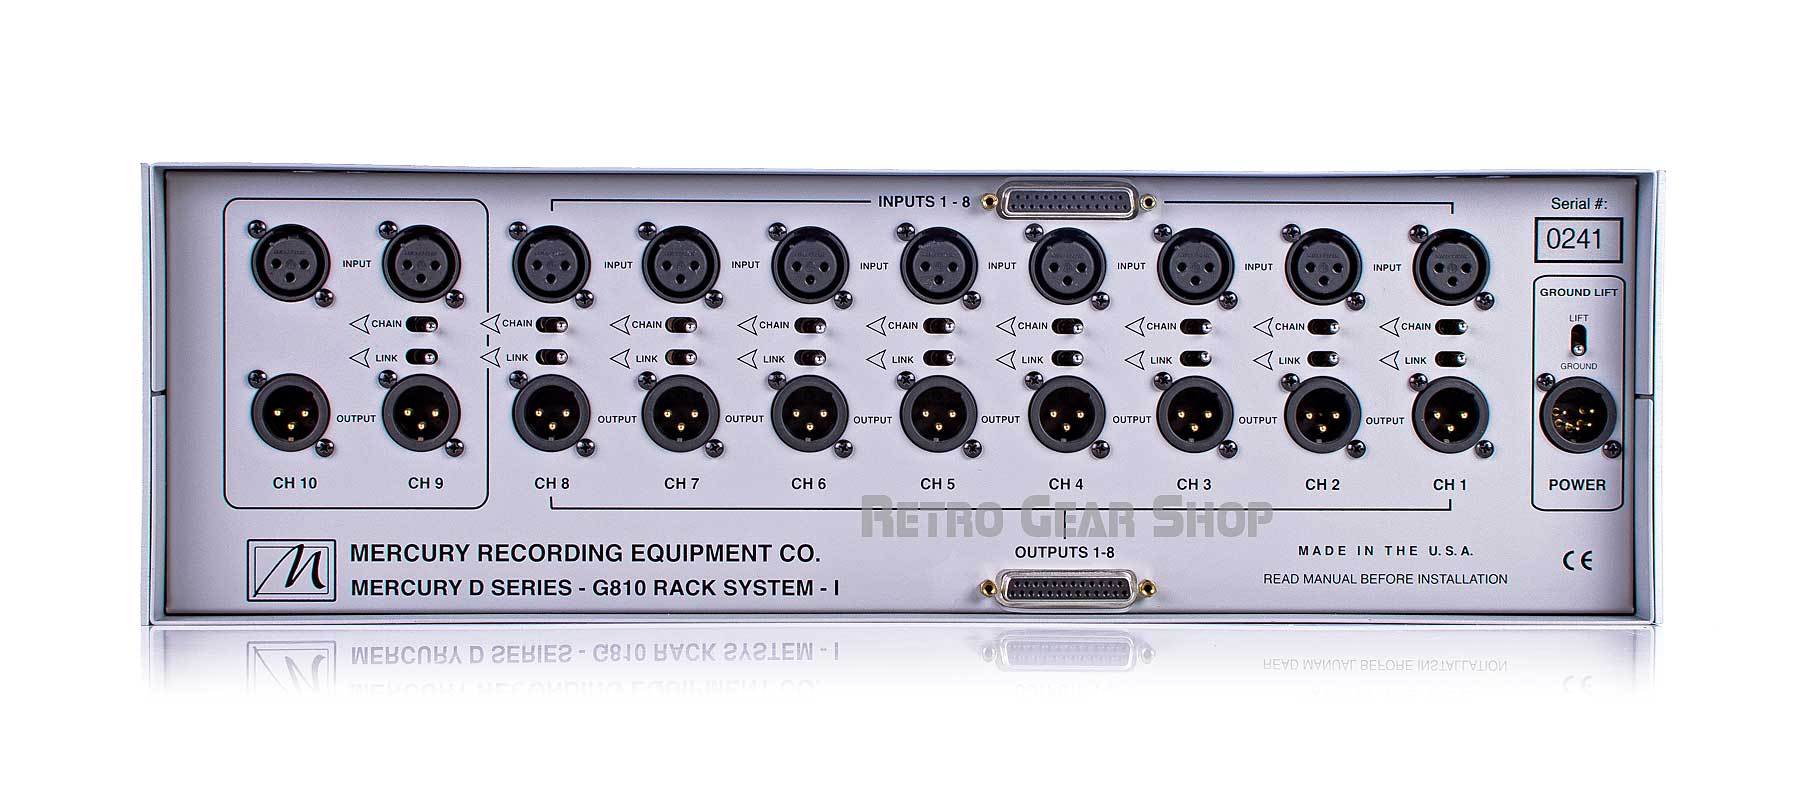 Mercury D Series G810 Rack System I Rear